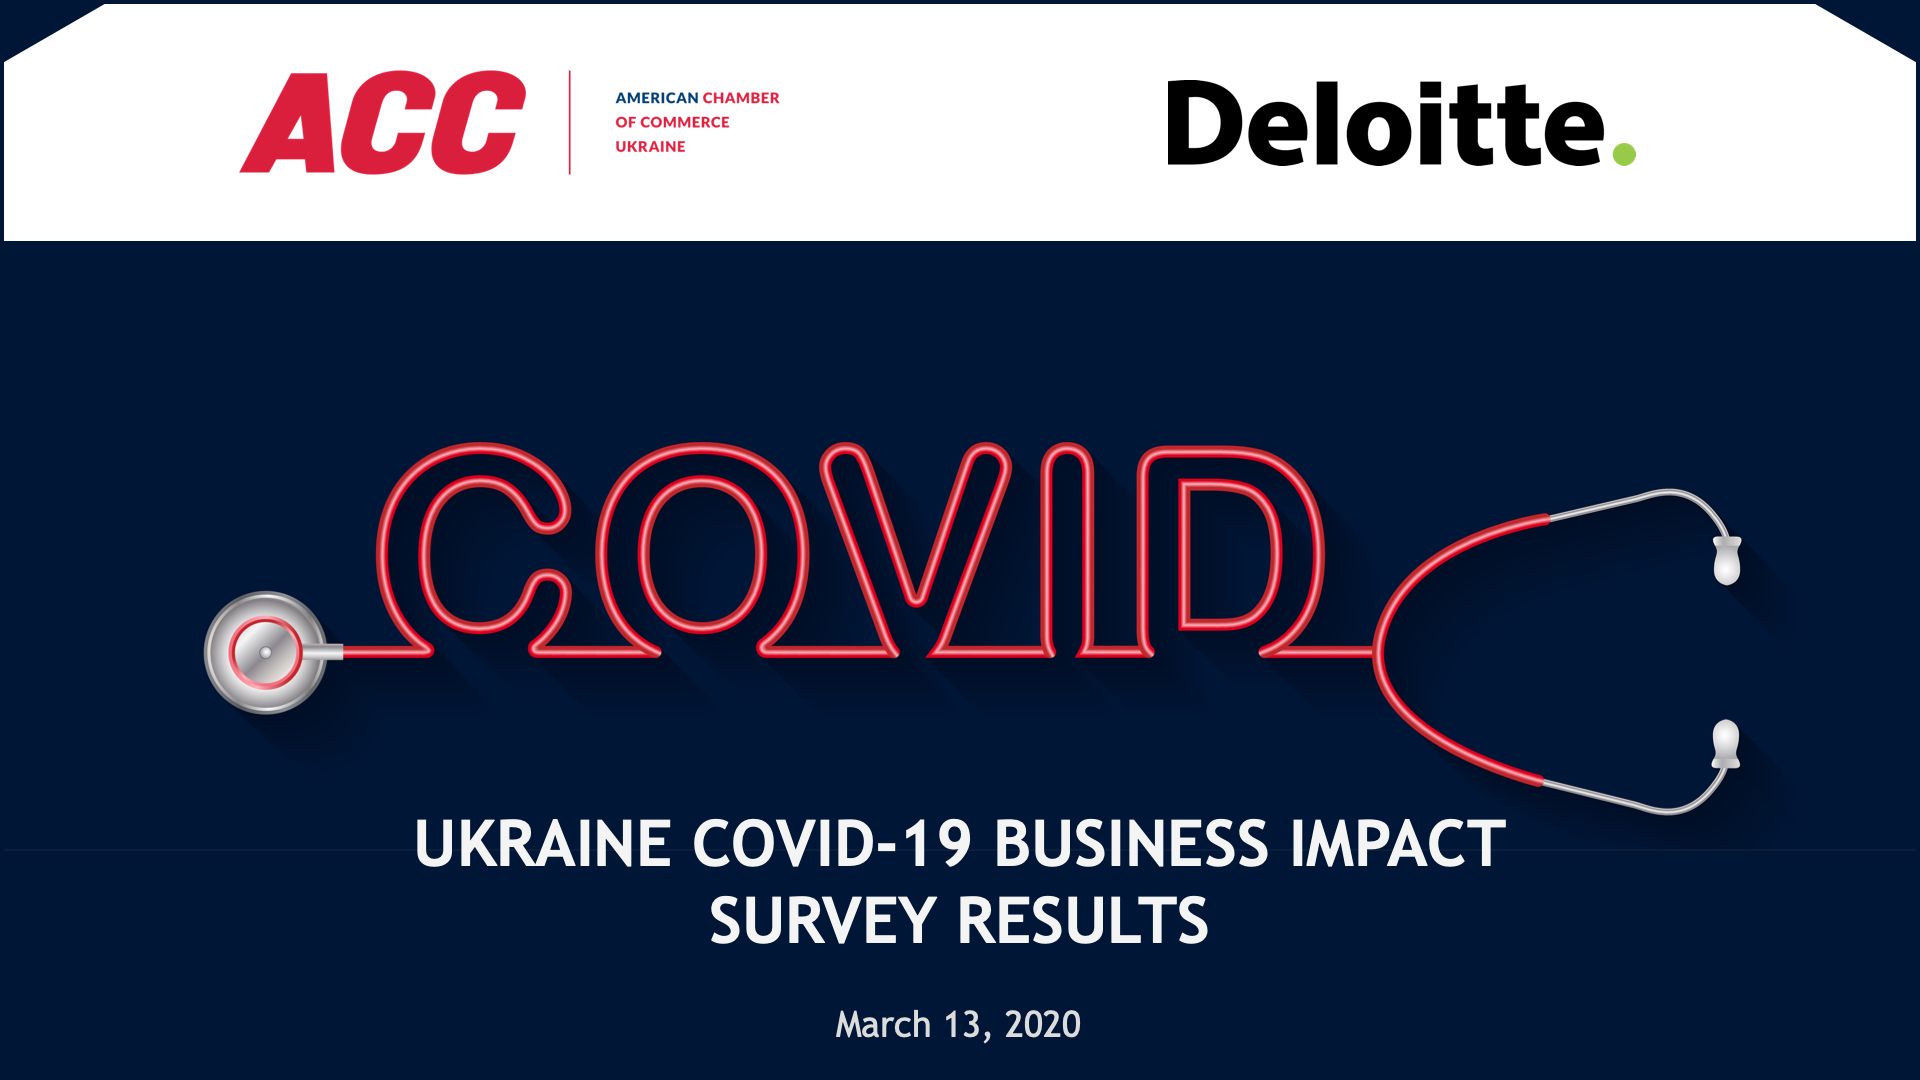 Ukraine COVID-19 Business Impact Survey Results